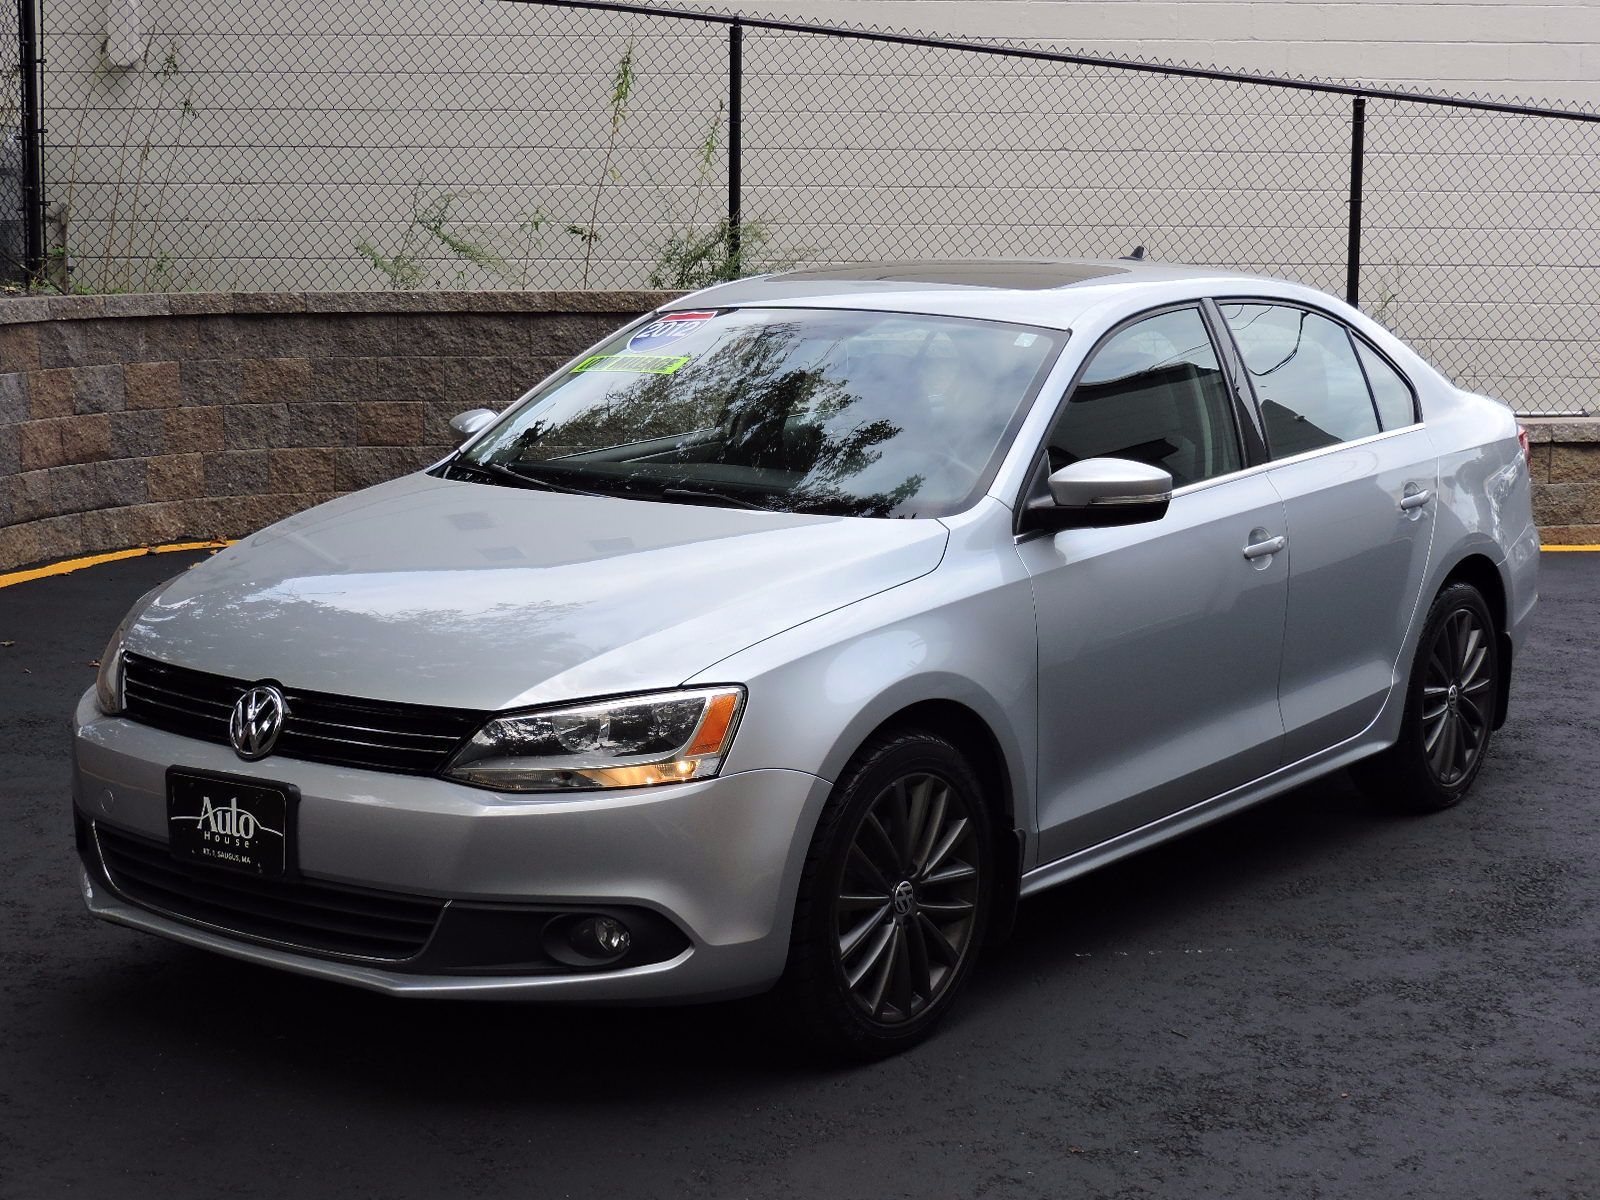 used 2012 volkswagen jetta sel wsunroof pzev at auto house usa saugus. Black Bedroom Furniture Sets. Home Design Ideas